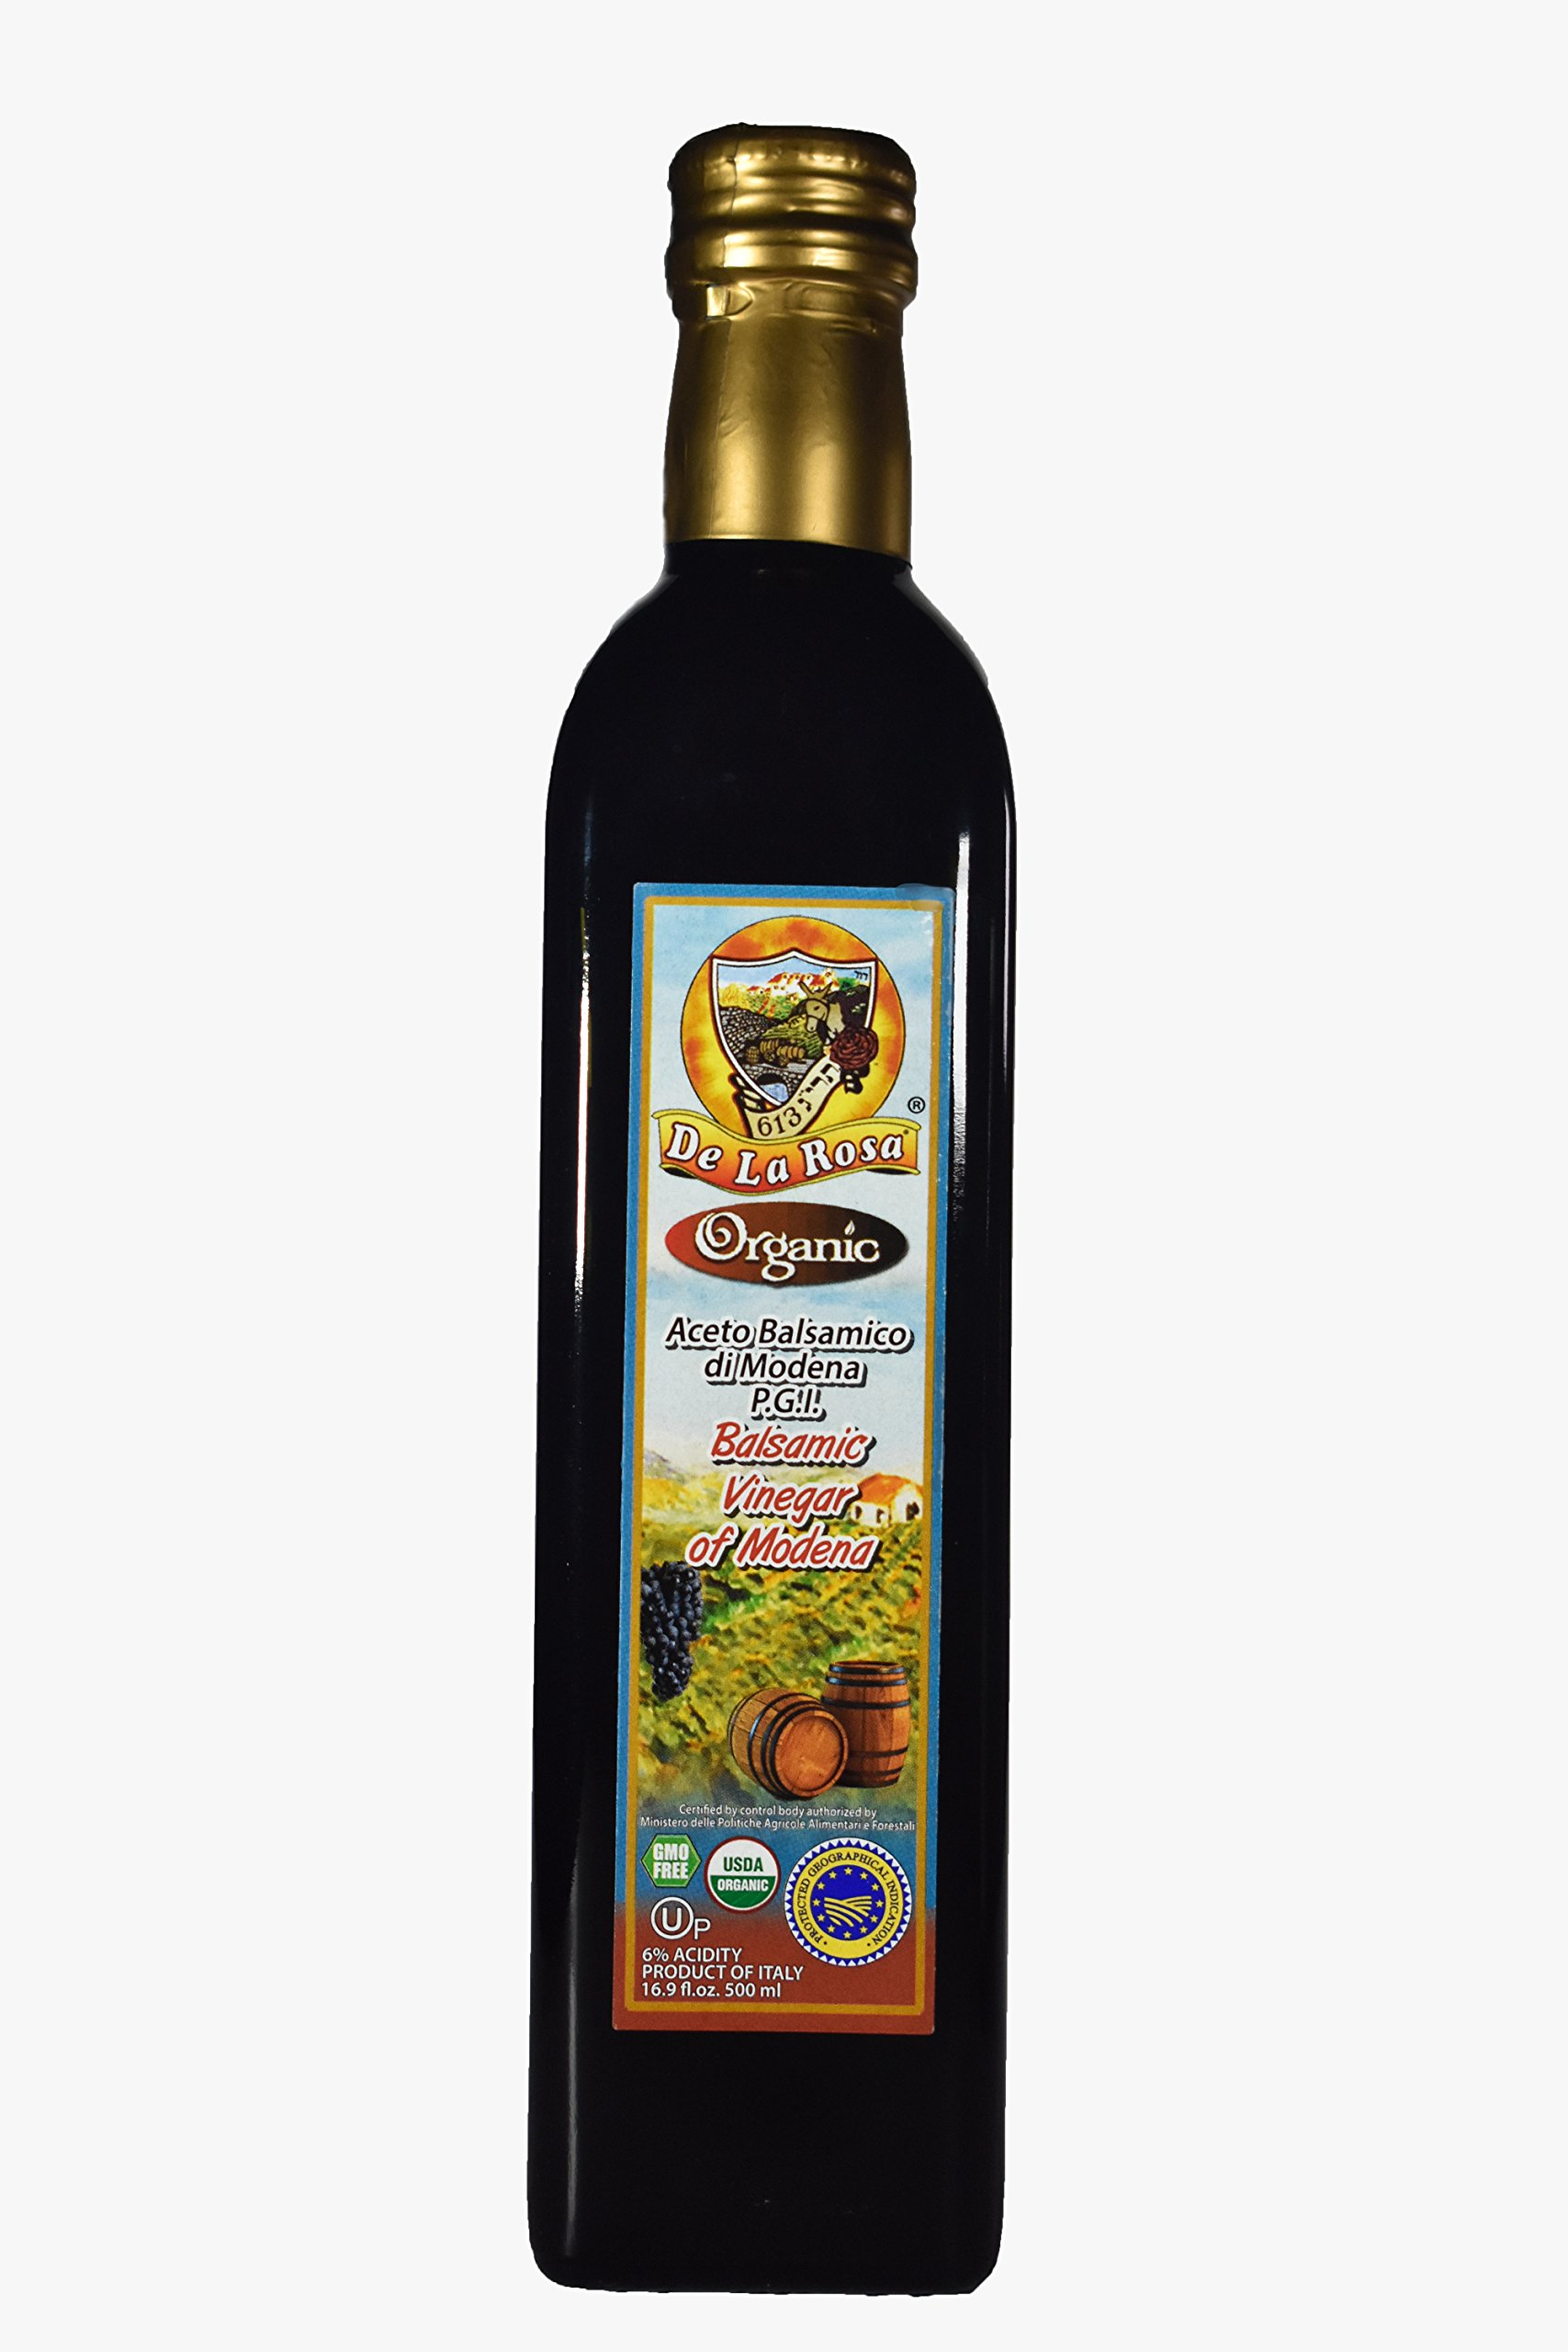 De La Rosa Real Foods & Vineyards - Organic Balsamic Vinegar of Modena (16.9 oz/500 ml) 1 100% Organic Balsamic Vinegar of Modena Kosher for Passover & all year around USDA Certified Organic. Vegan. GMO-Free. Gluten Free. No additives or Preservatives added